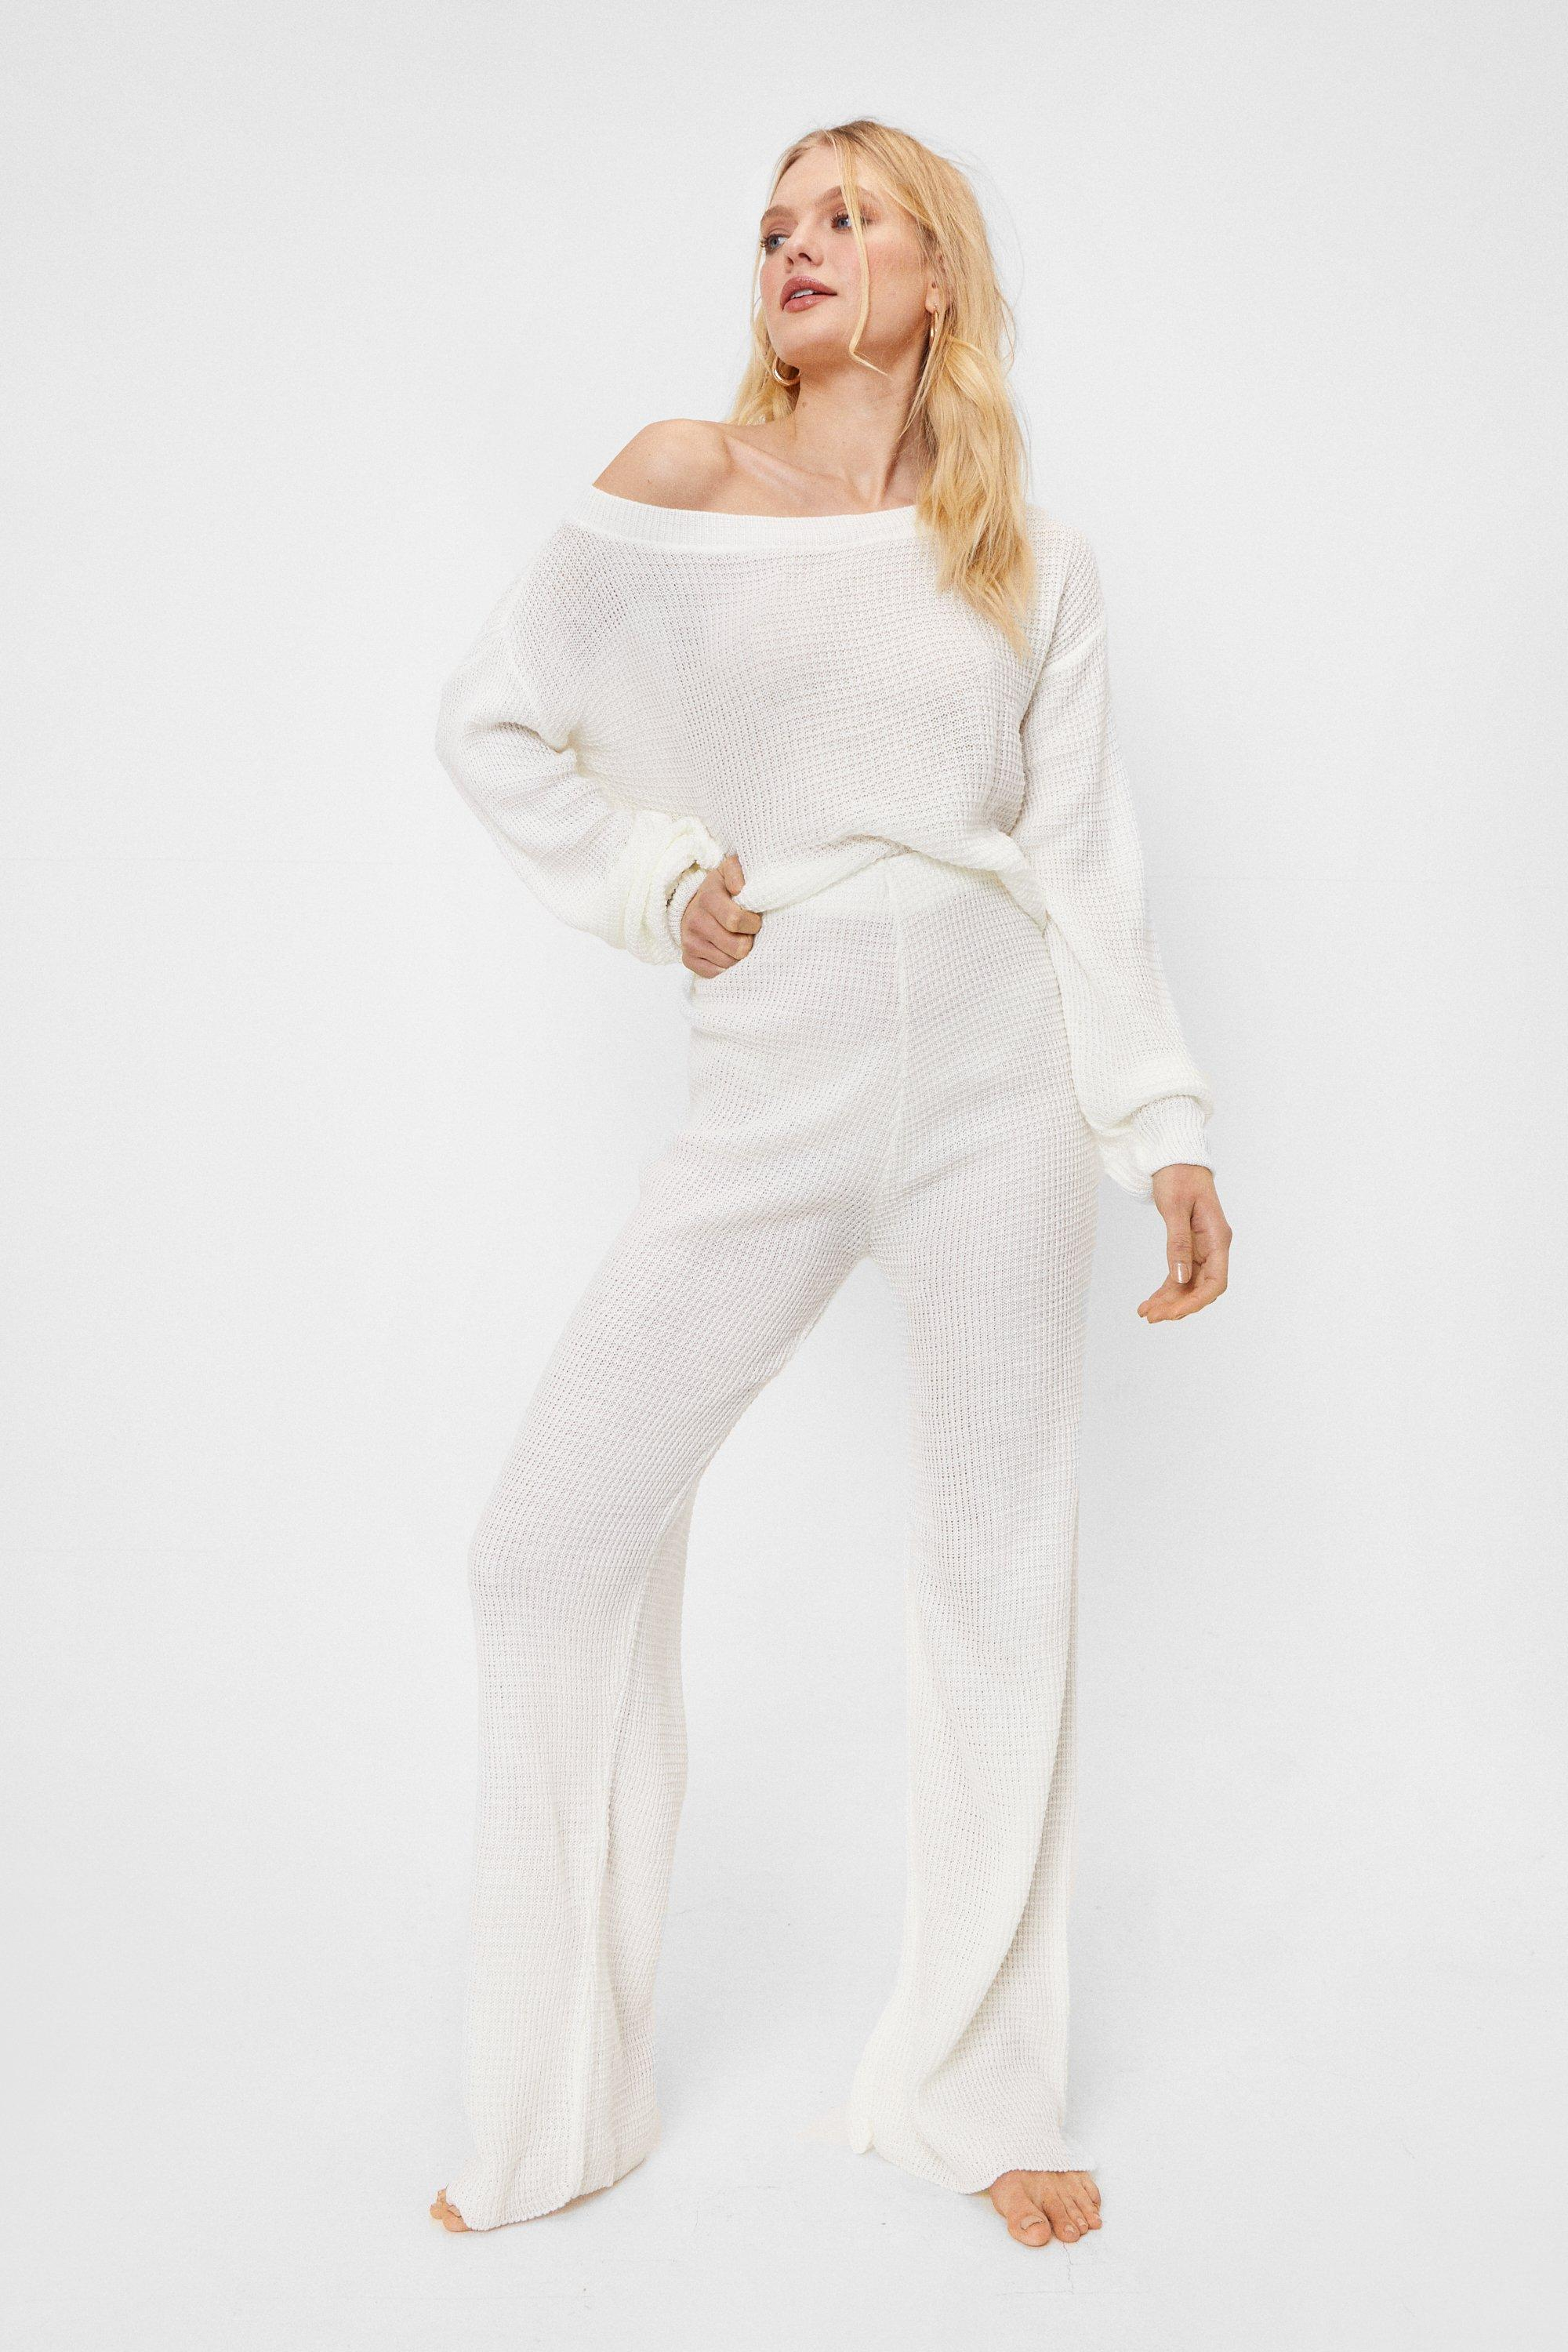 Image of Womens Waffle Top and Legging Set - Cream